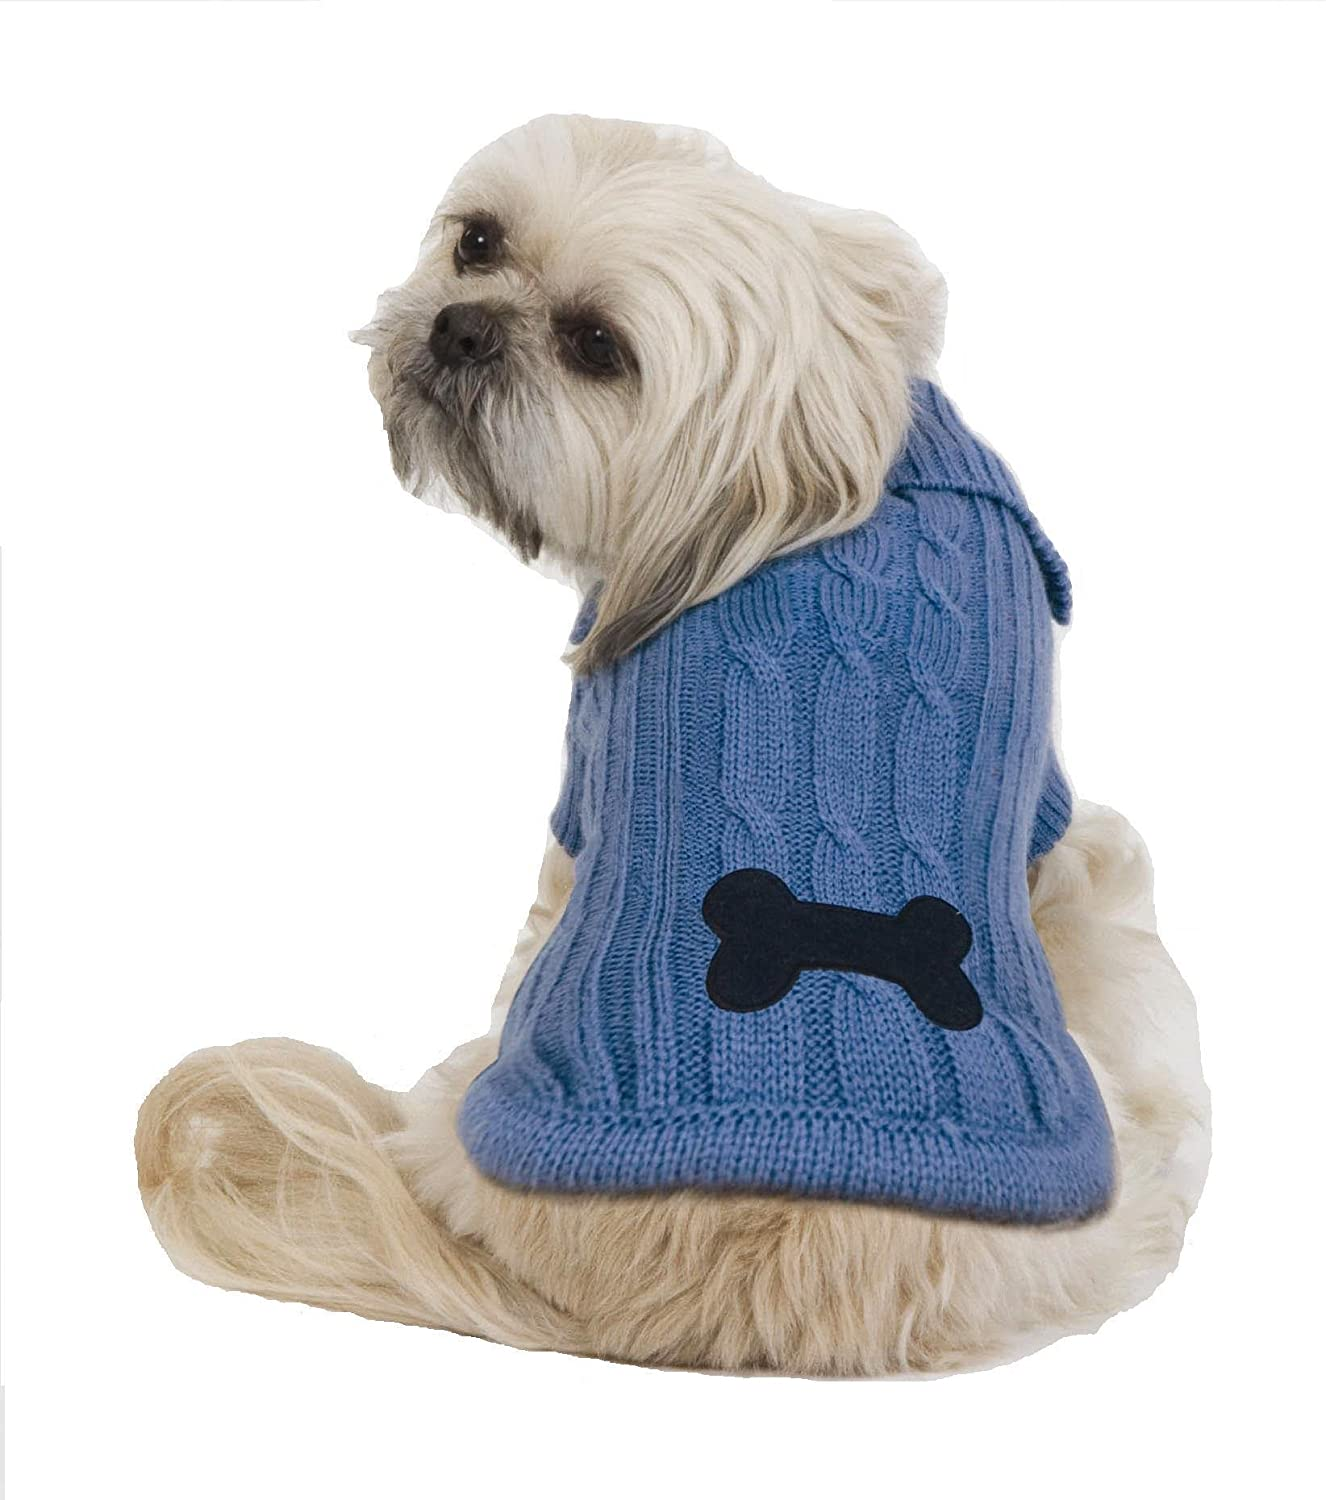 Amazon.com : Fashion Pet Bone Patch Xtra-Small Cable Dog Sweater ...